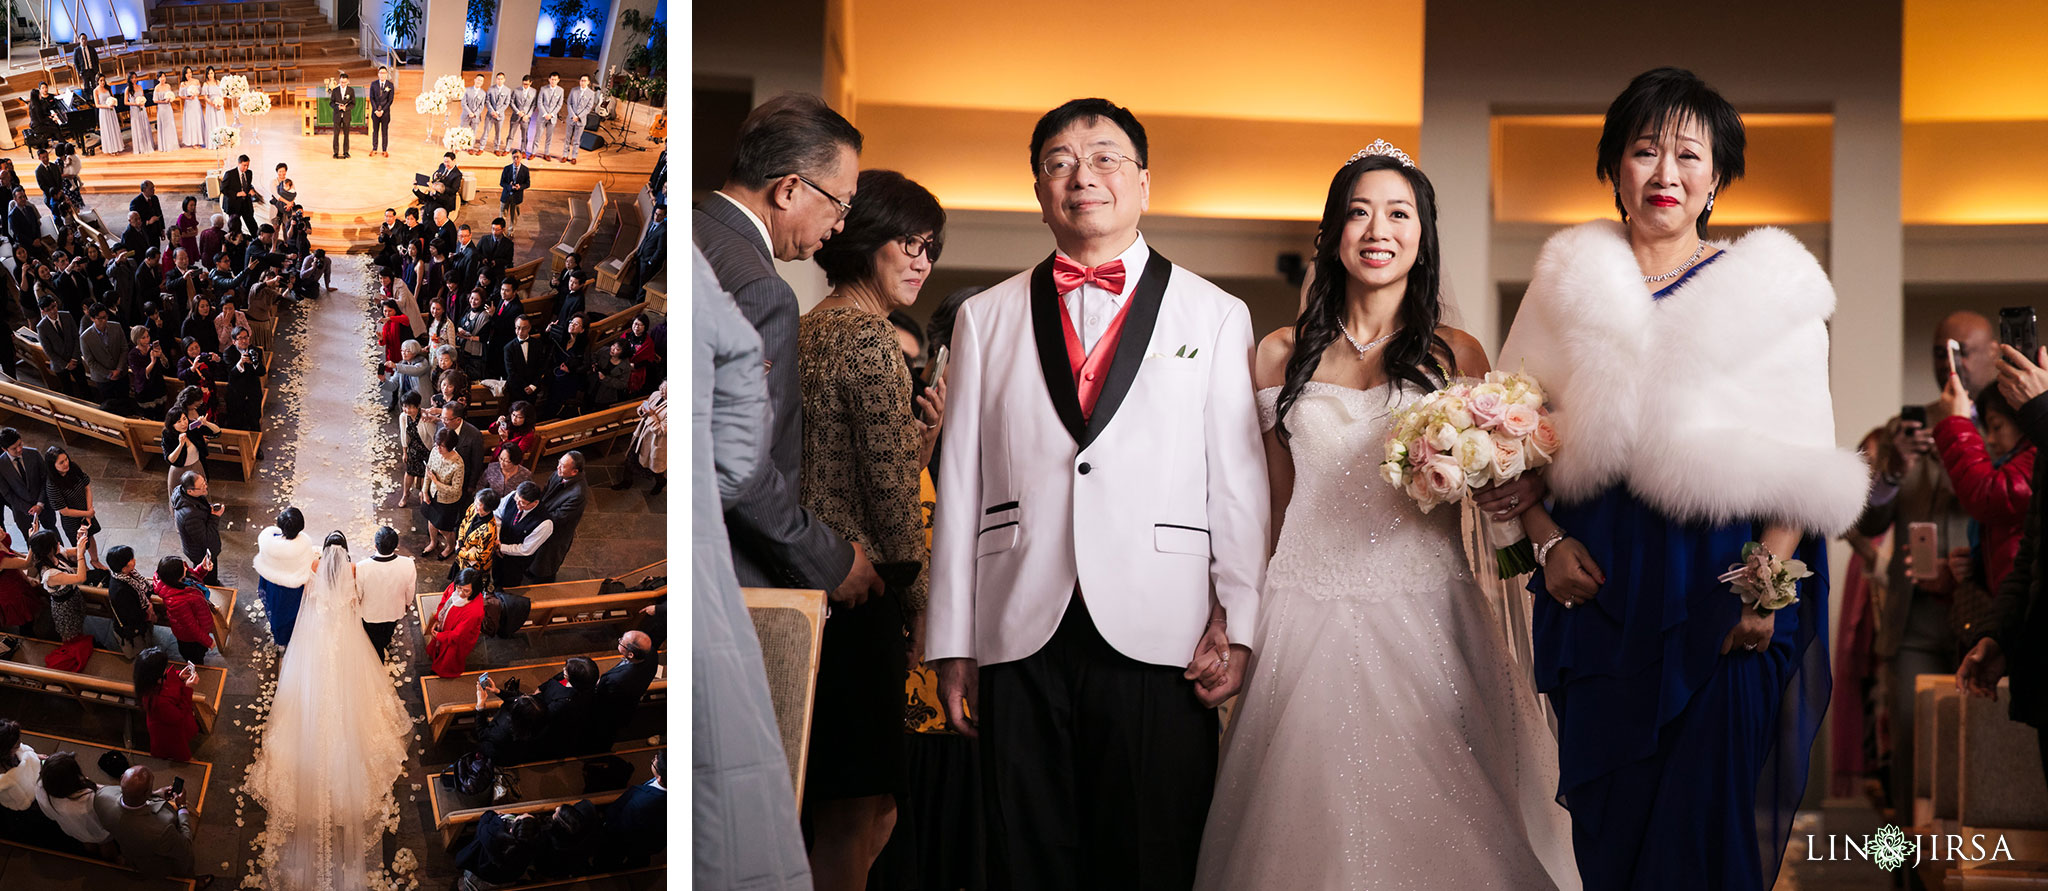 16 Skirball Cultural Center Los Angeles Wedding Photography